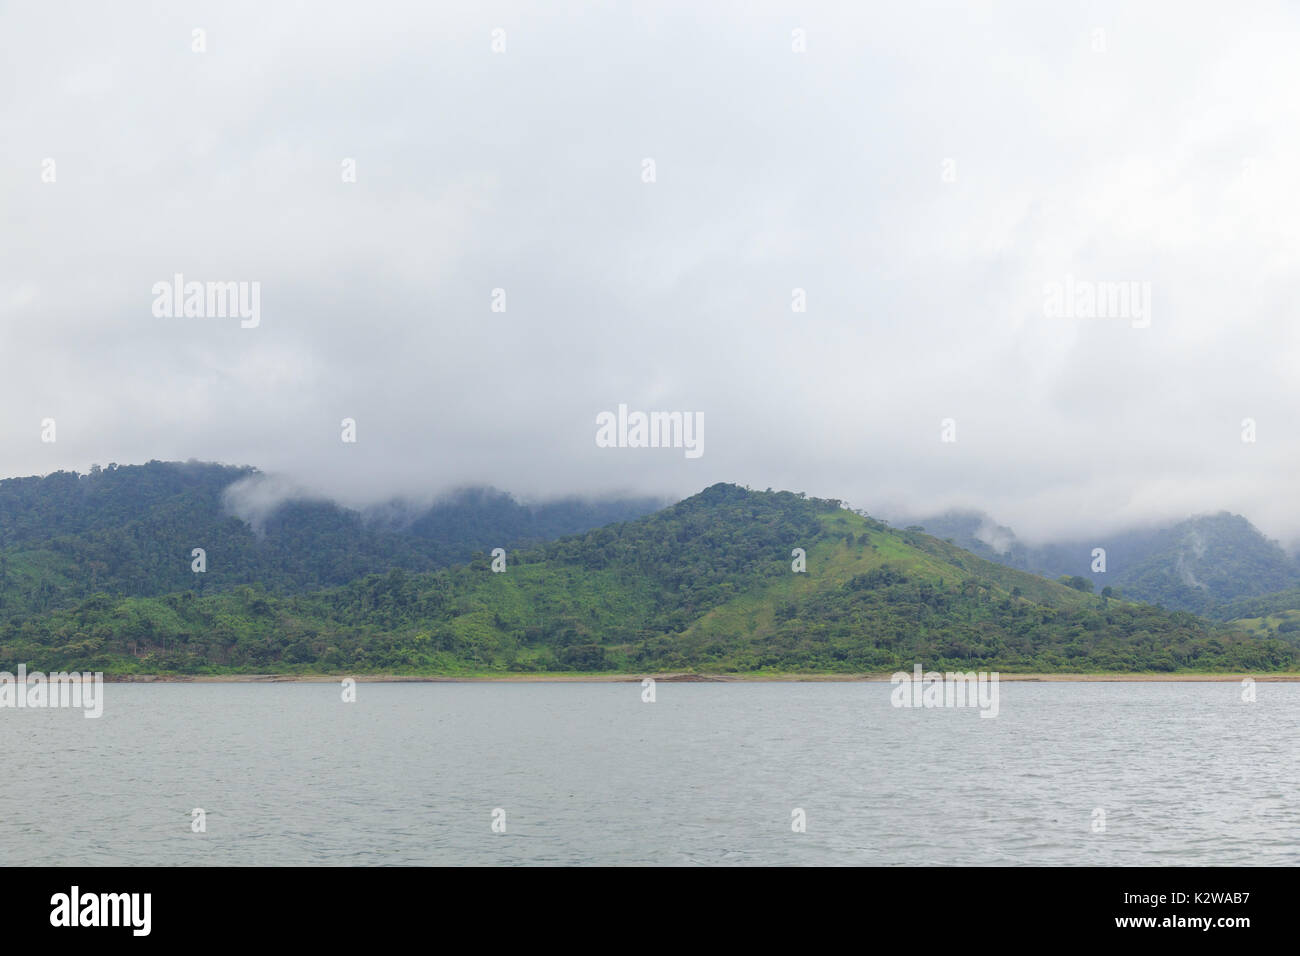 Hills and forest at lake arenal Costa Rica - Stock Image